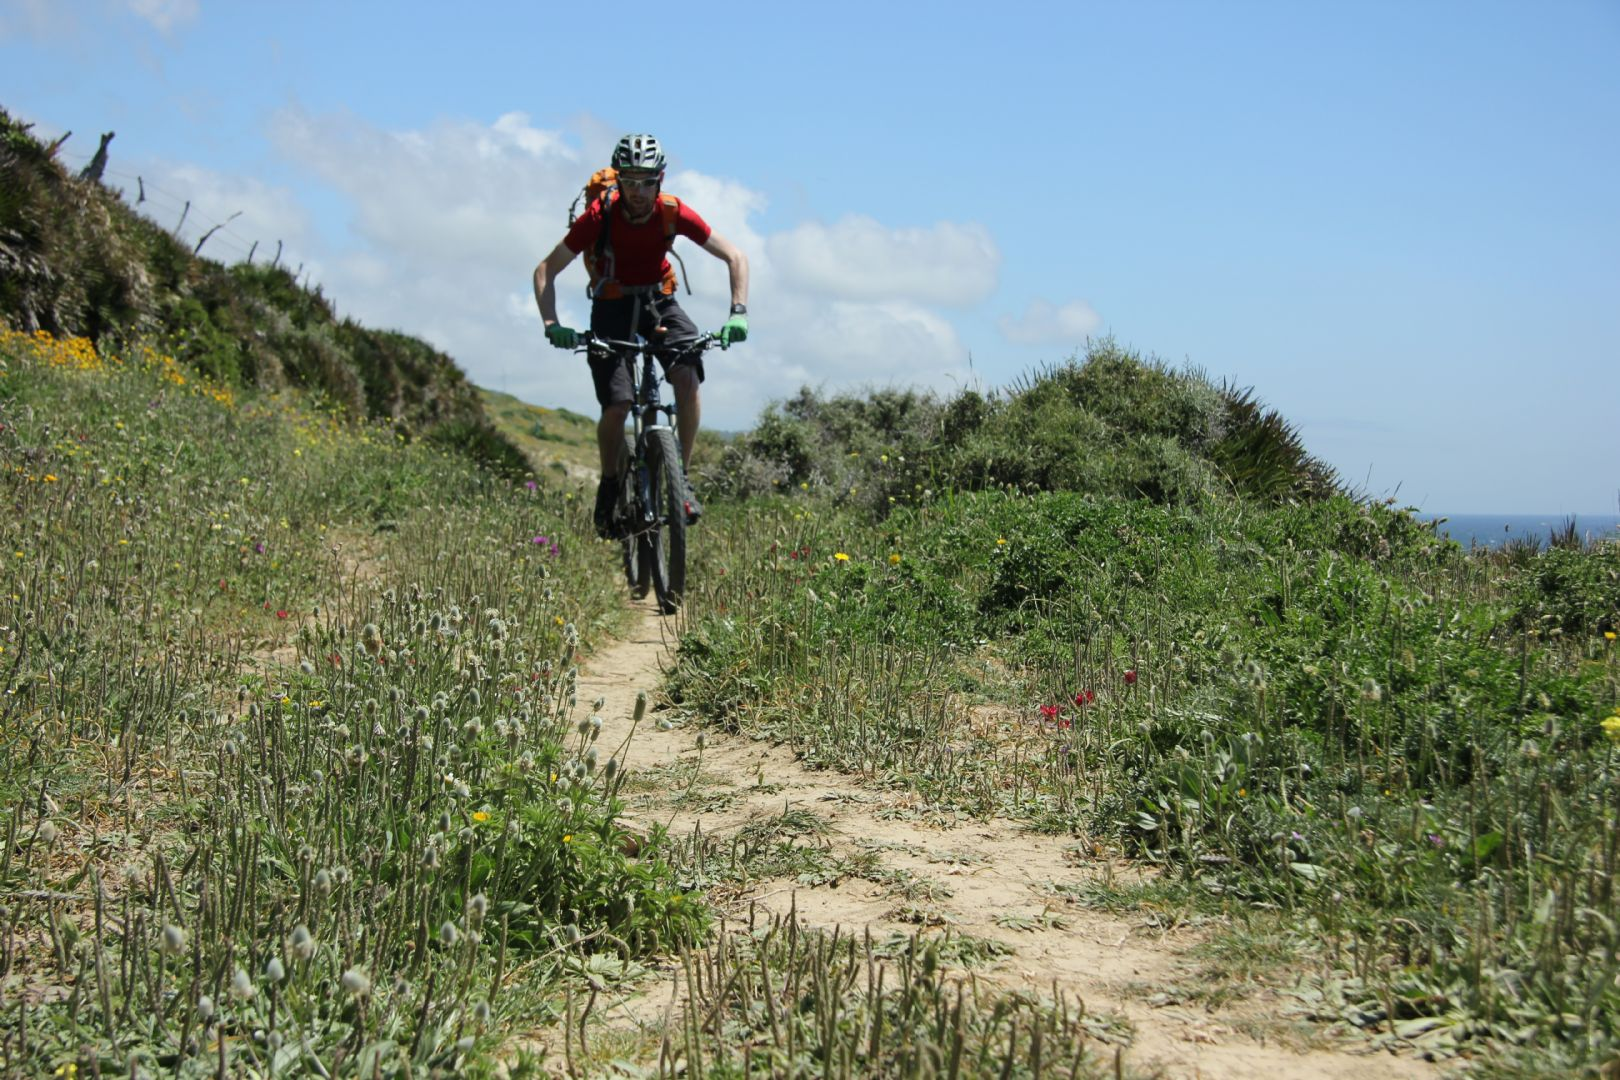 mountain-biking-holiday-in-spain-andalucia-mtb.jpg - Spain - Awesome Andalucia - Guided Mountain Bike Holiday - Mountain Biking